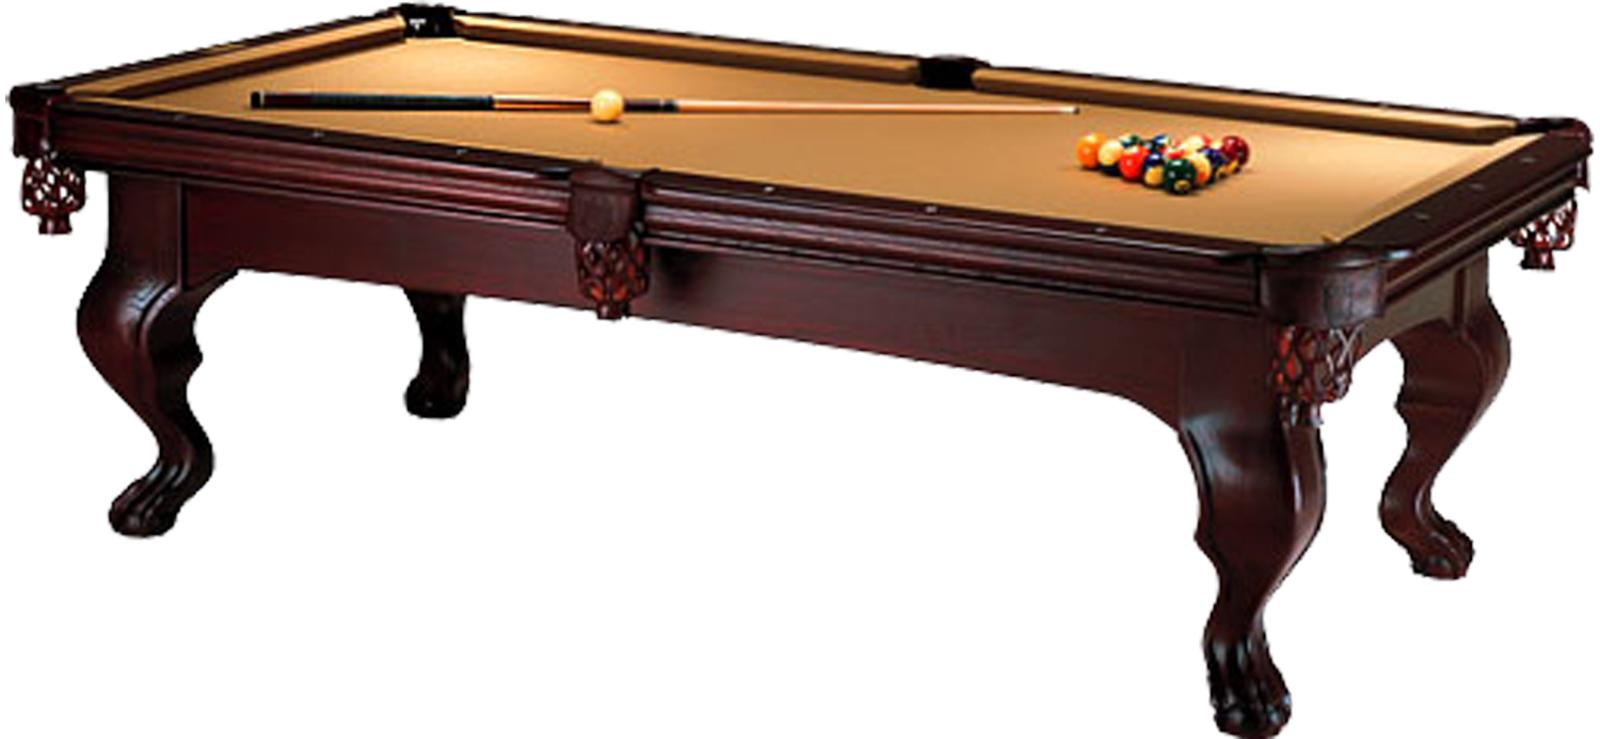 Avondale austin billiards austin texas 39 premier pool table retailer - Photos of pool tables ...